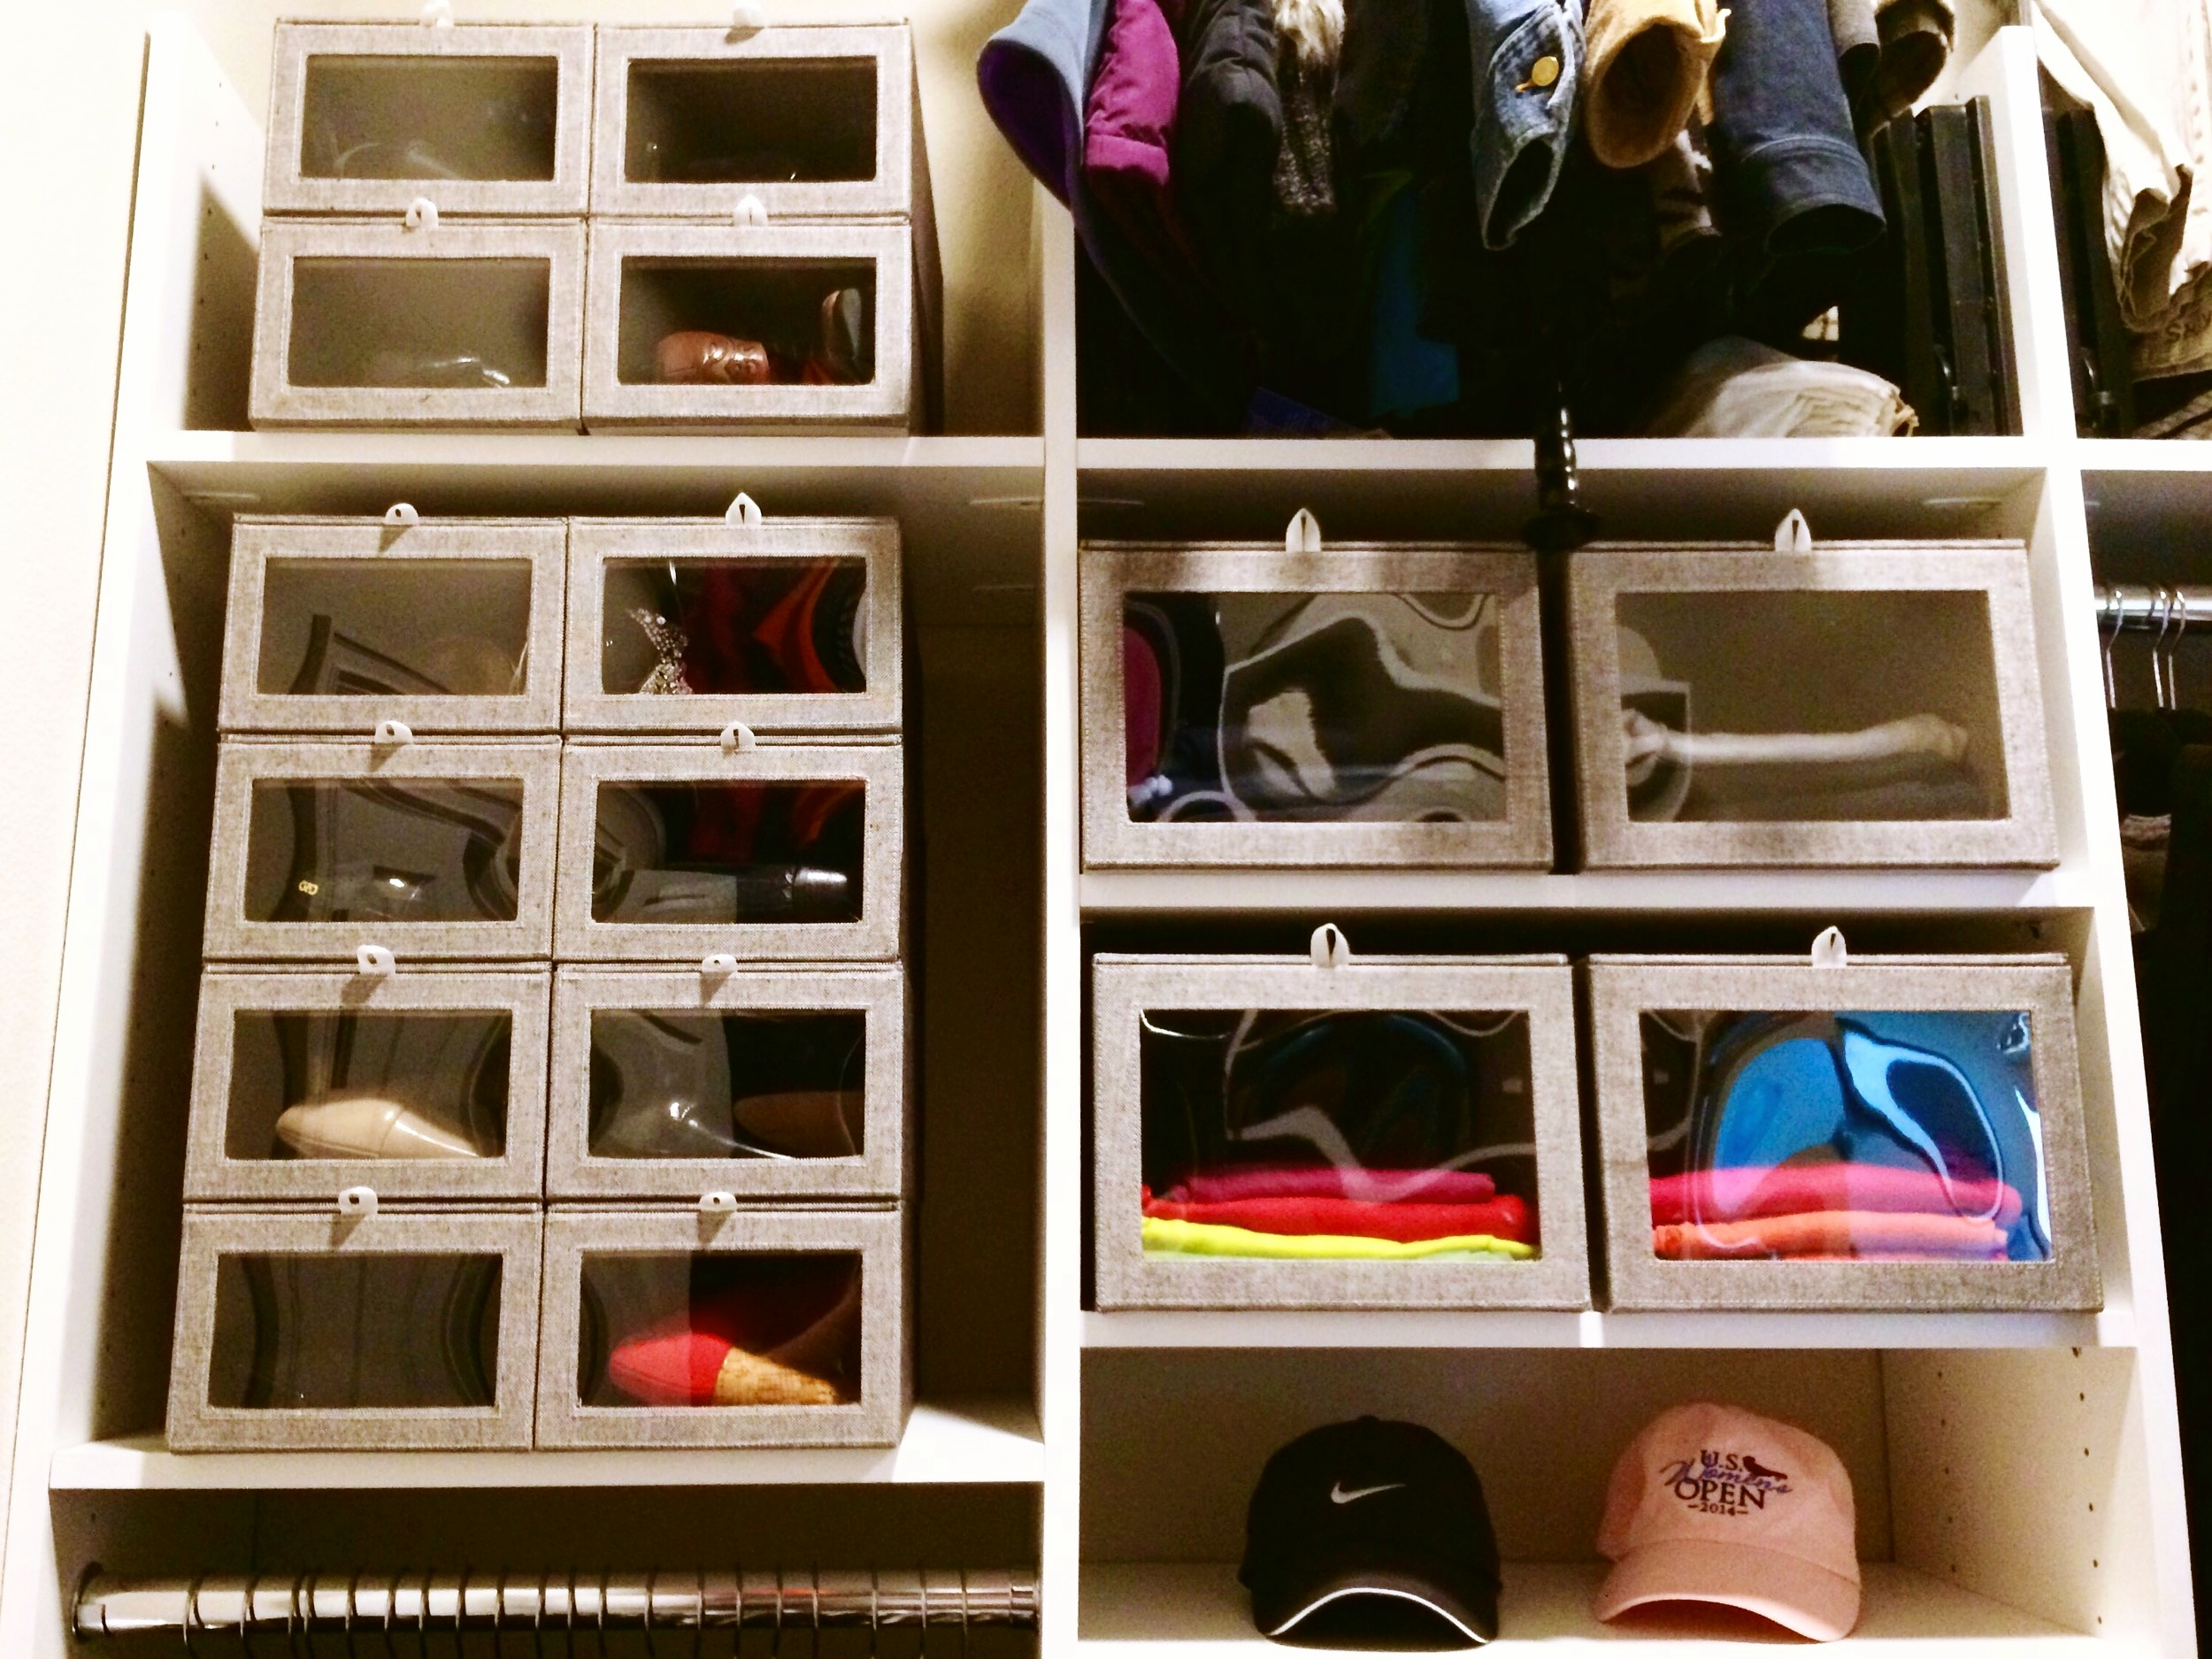 Storage boxes declutter your closet and serve many purposes: shoe organizer, purse display, off-season clothes storage.  Call Closets of Tulsa  today for a FREE consultation and 3-D closet design:  918.609.0214